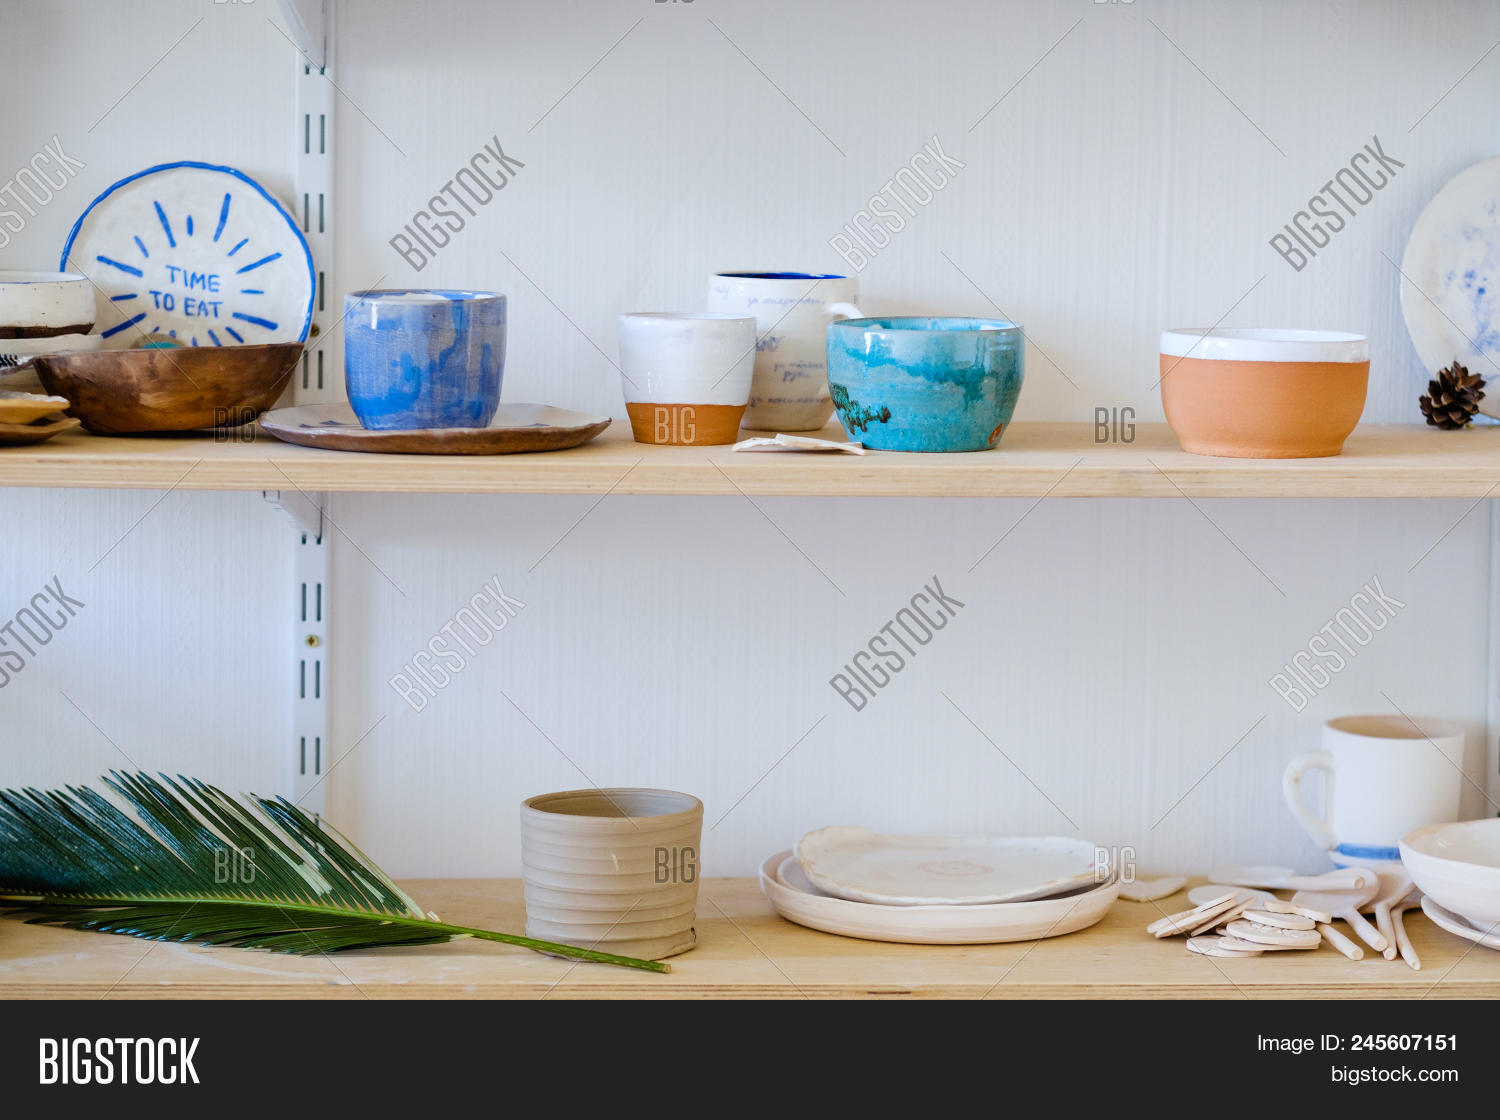 Handmade Crockery Image Photo Free Trial Bigstock